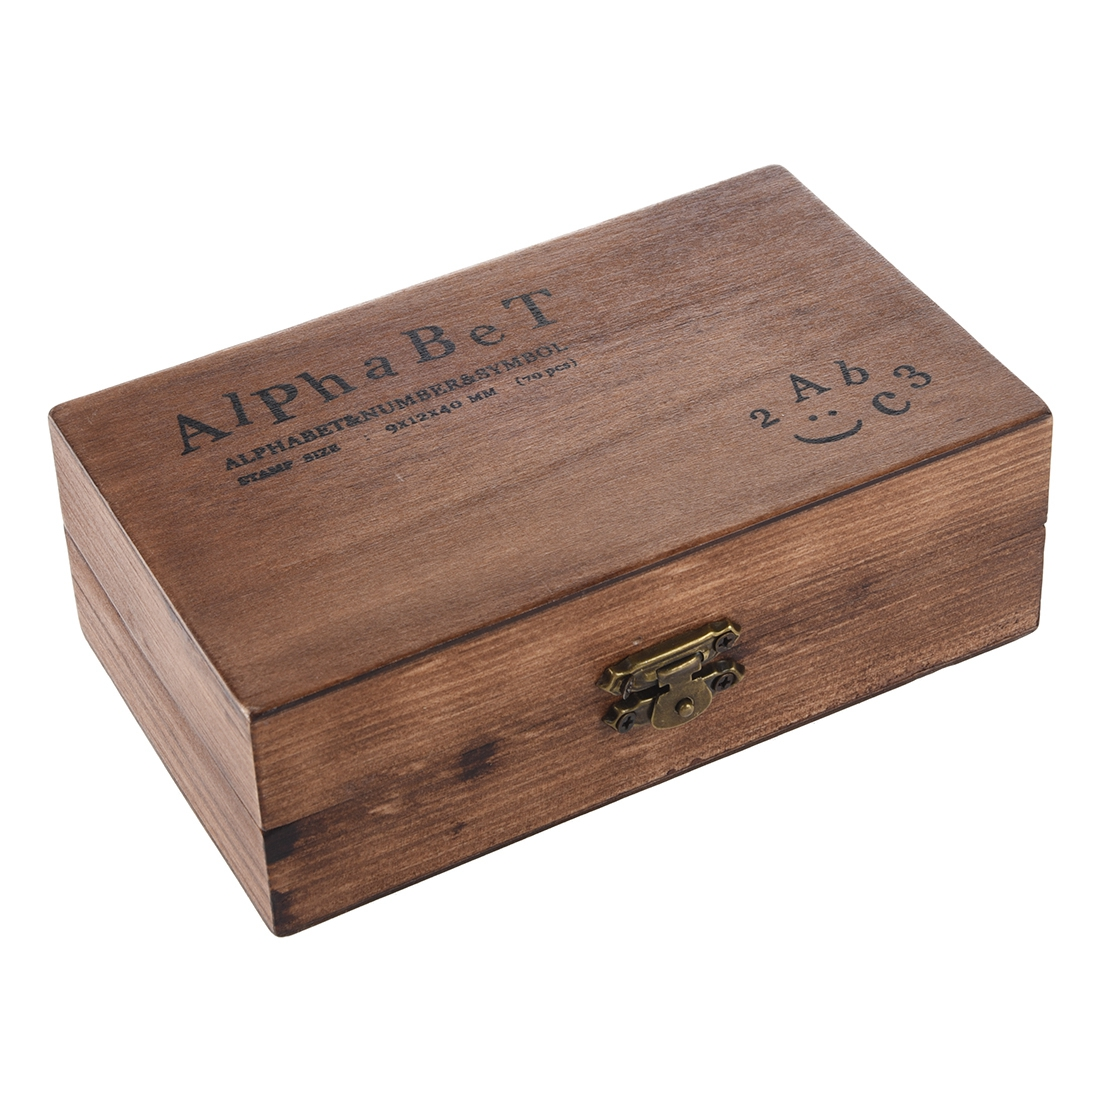 New Pack of 70pcs Rubber Stamps Set Vintage Wooden Box Case Alphabet Letters Number Craft (No Ink Pad Included) details about east of india rubber stamps christmas weddings gift tags special occasions craft